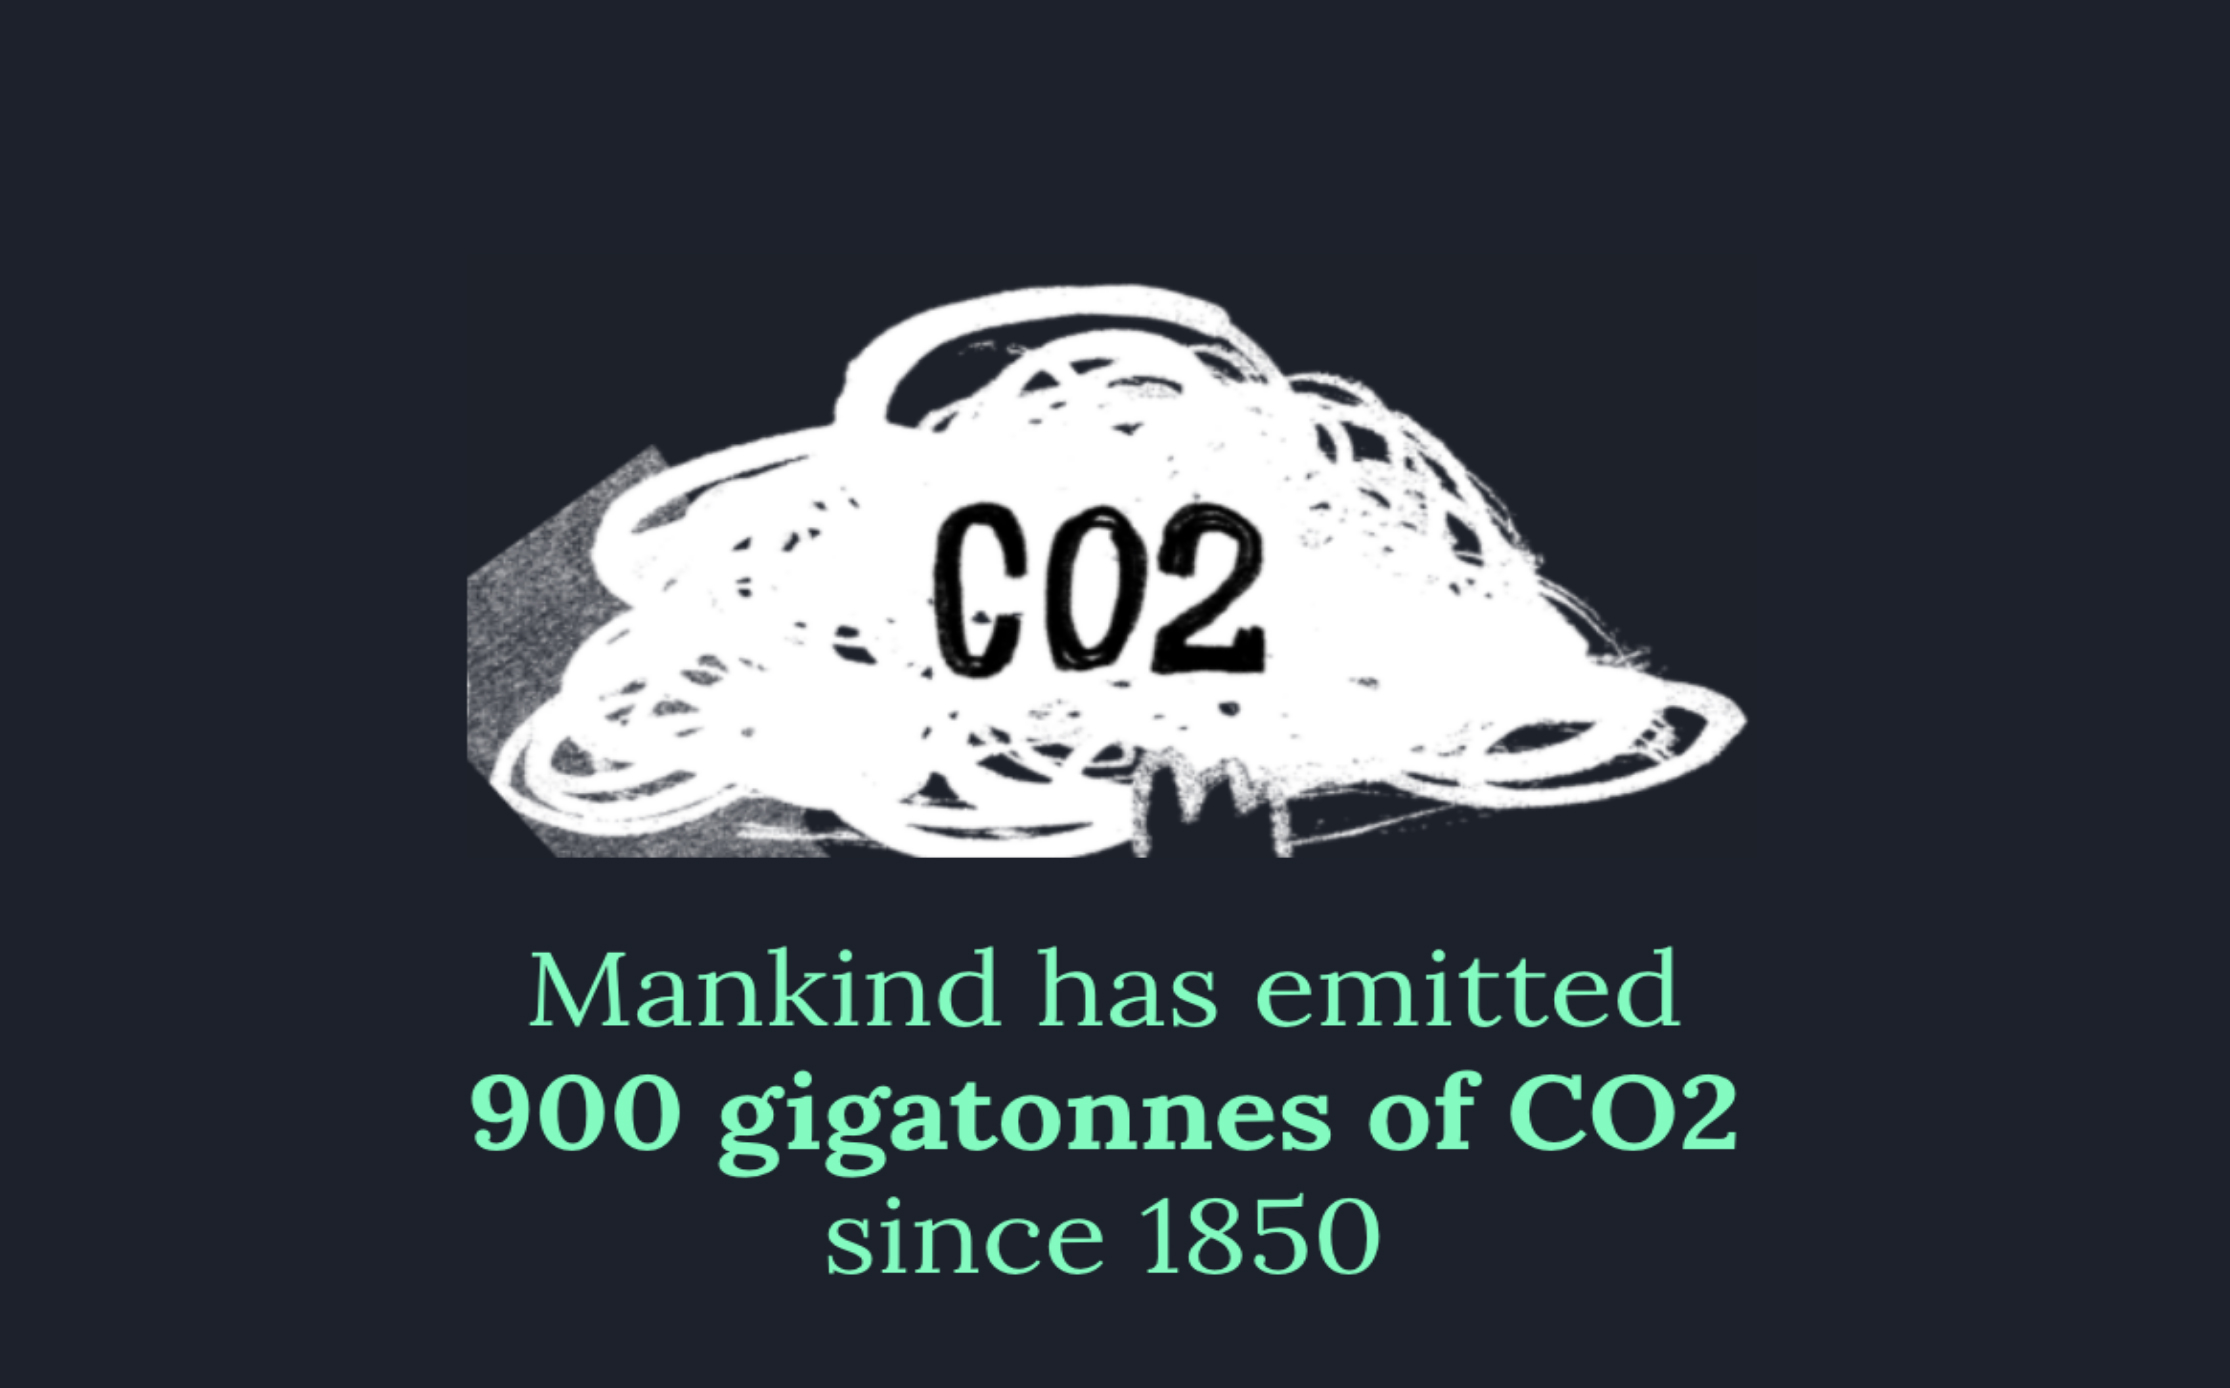 900 gigatonnes of CO2 since 1850